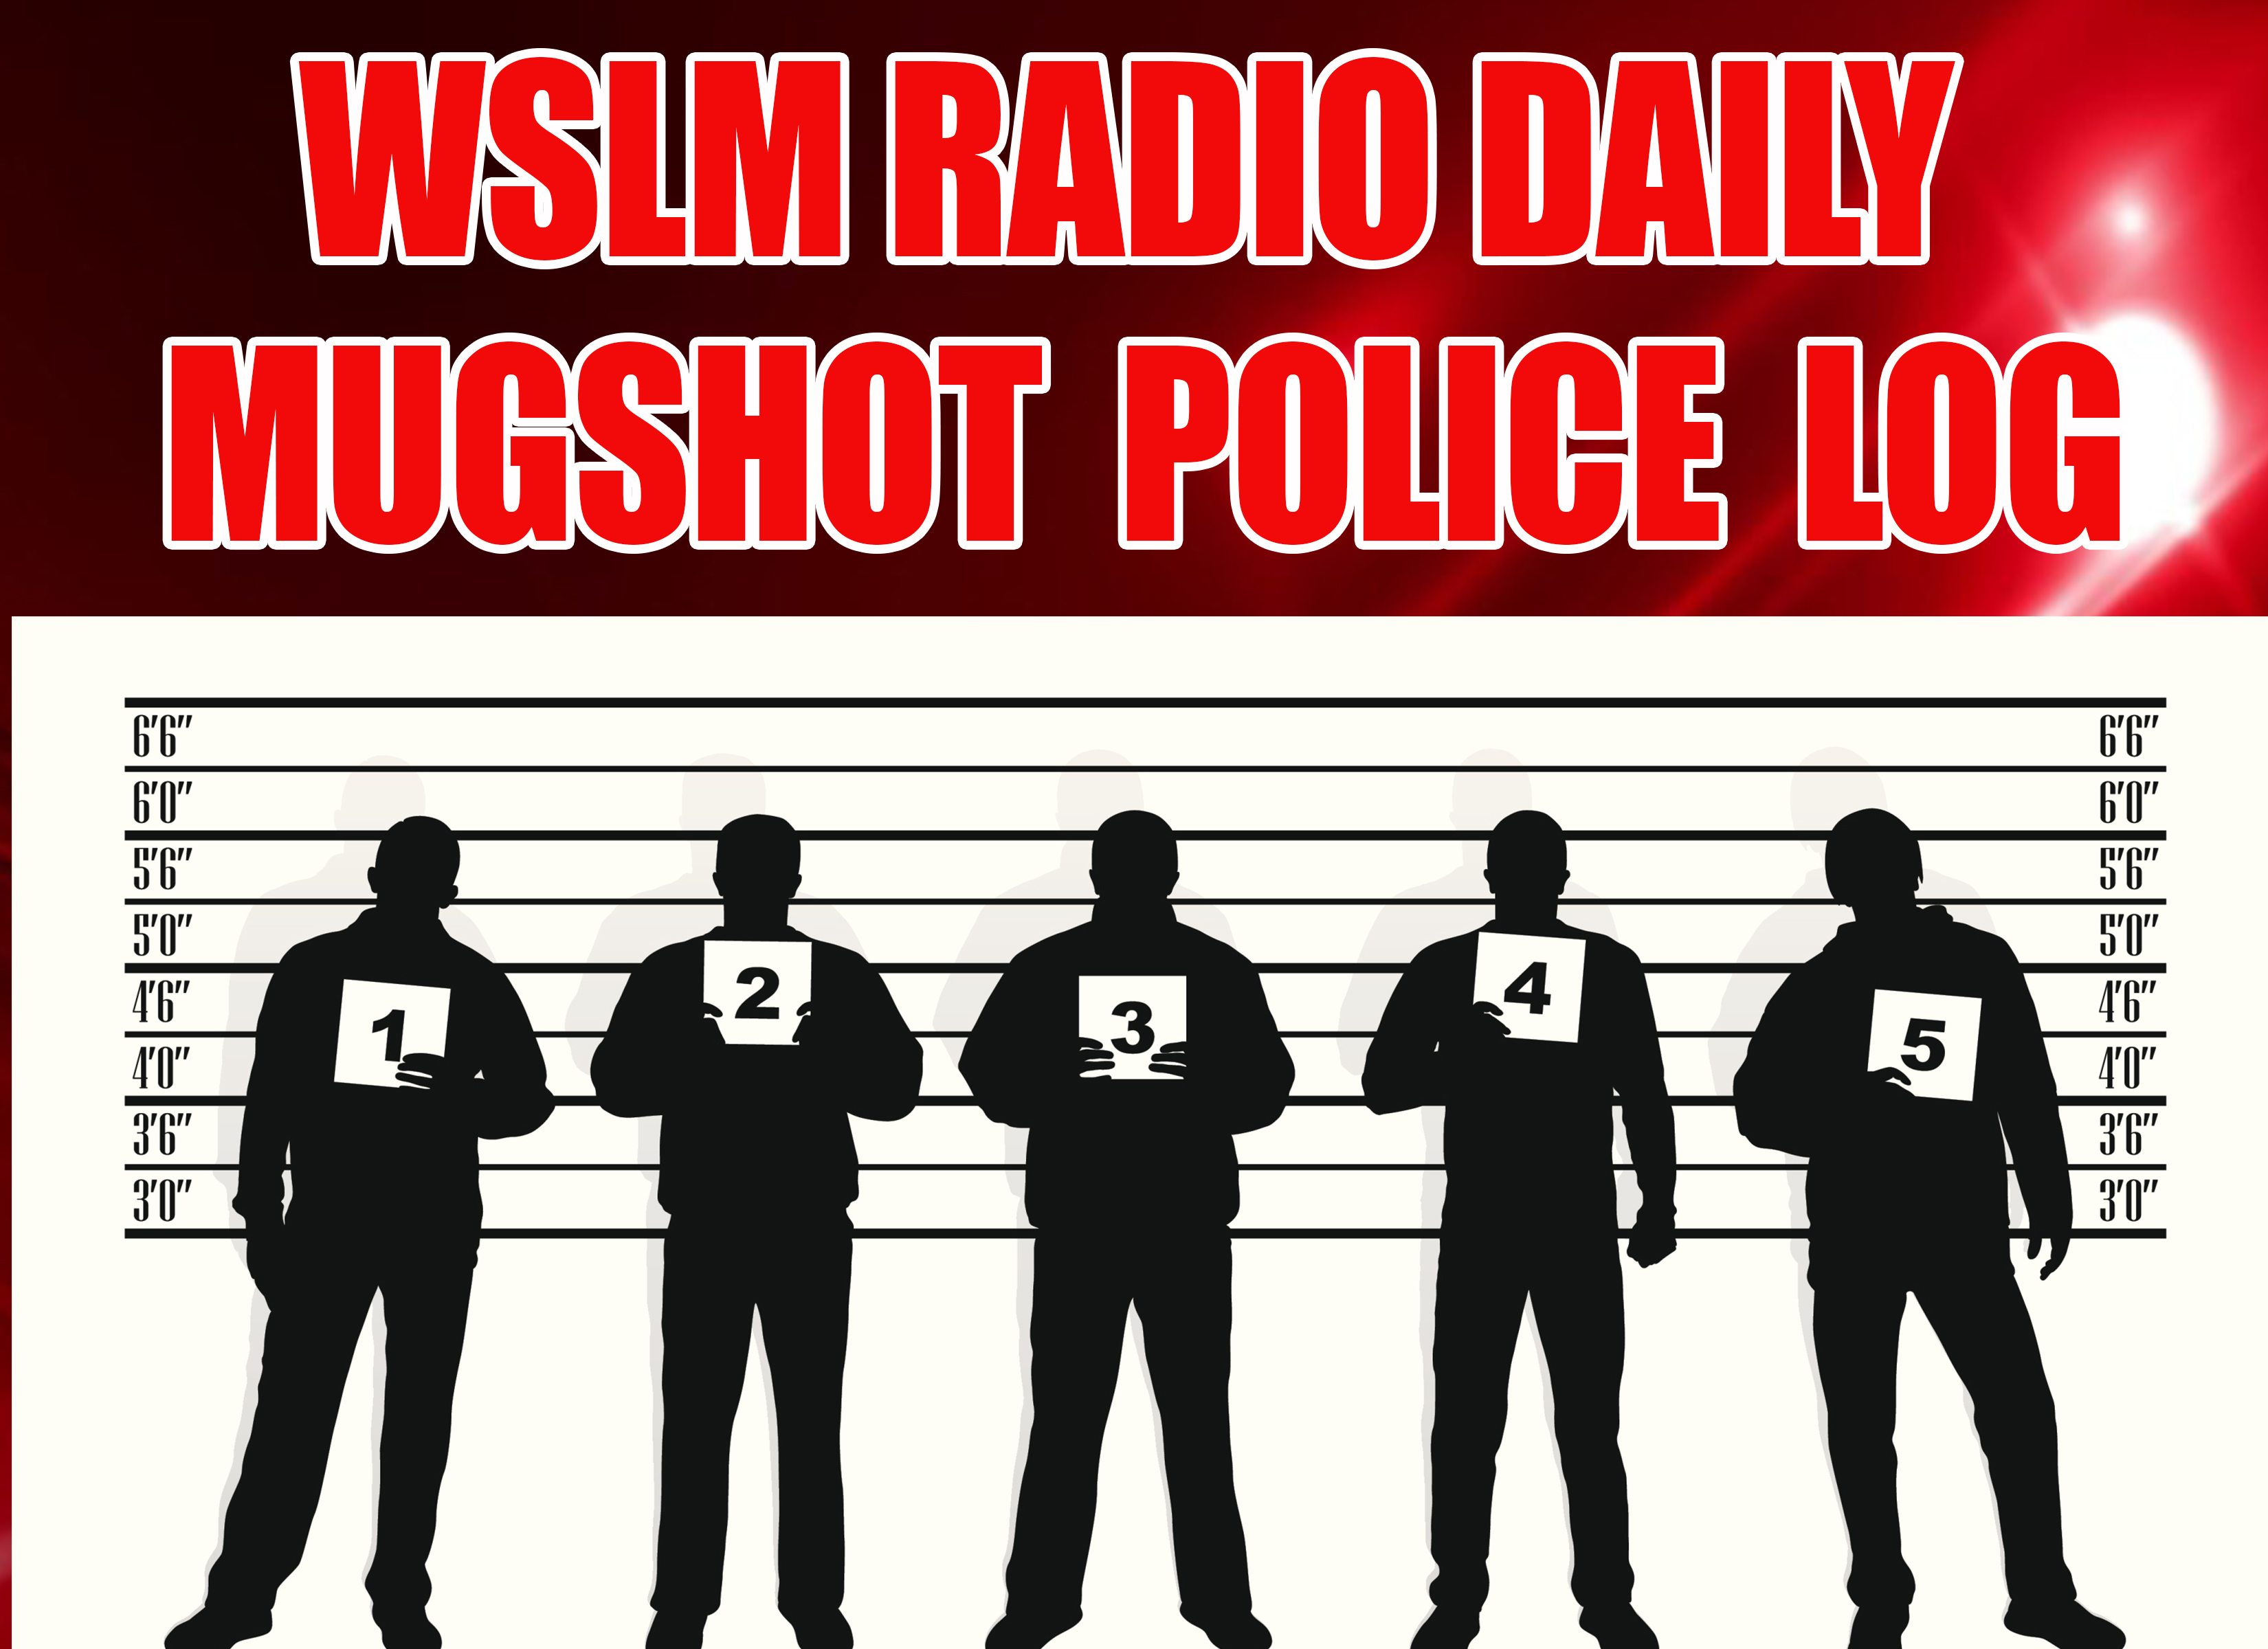 Lawrence County Inmate Roster – 2-10-19 | WSLM RADIO